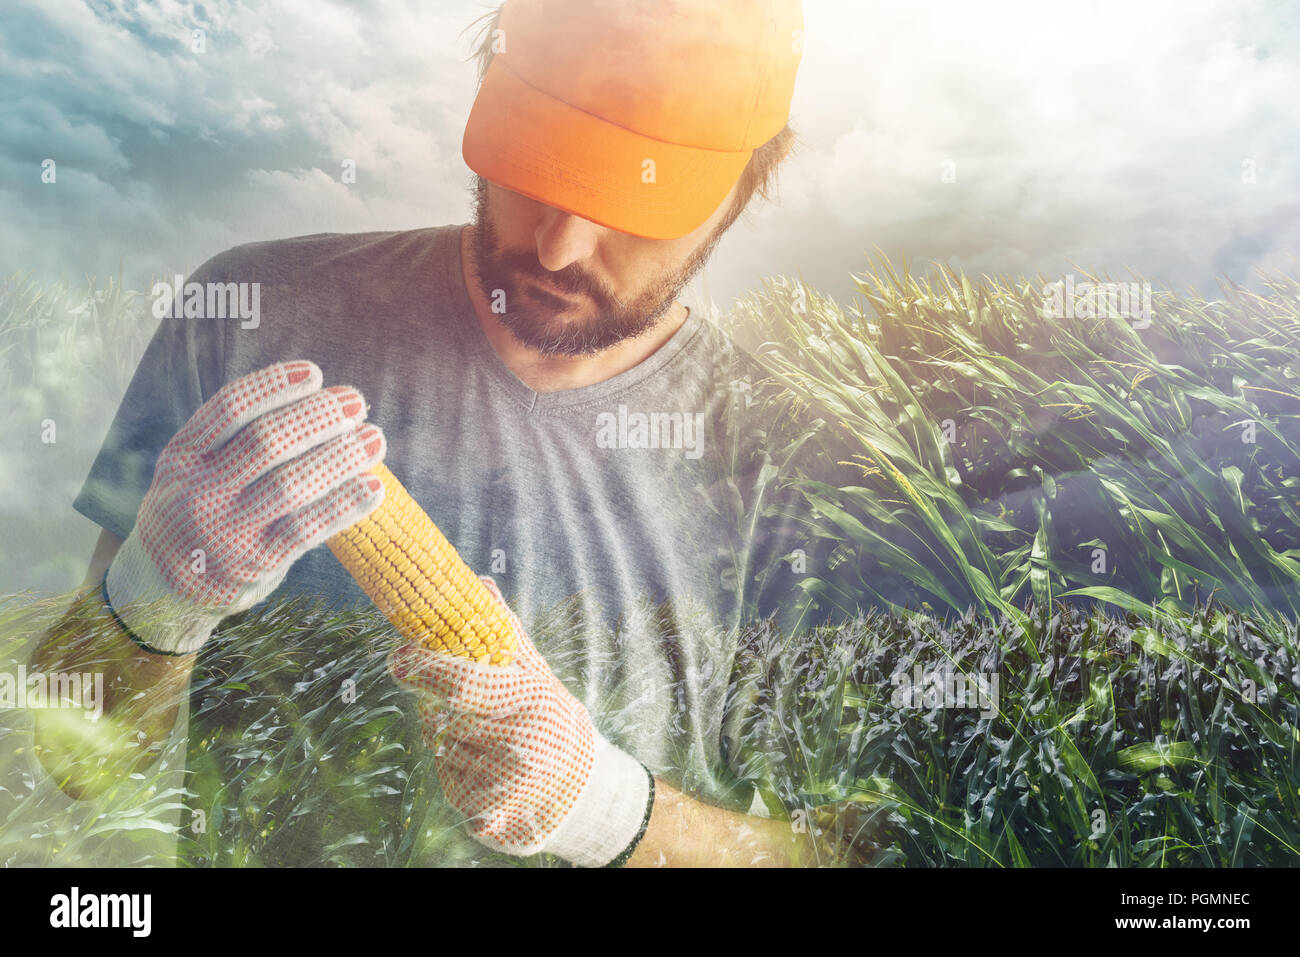 dbb961efbe0 Proud authentic farmer posing with corn on the cob produced in his own  cultivated field